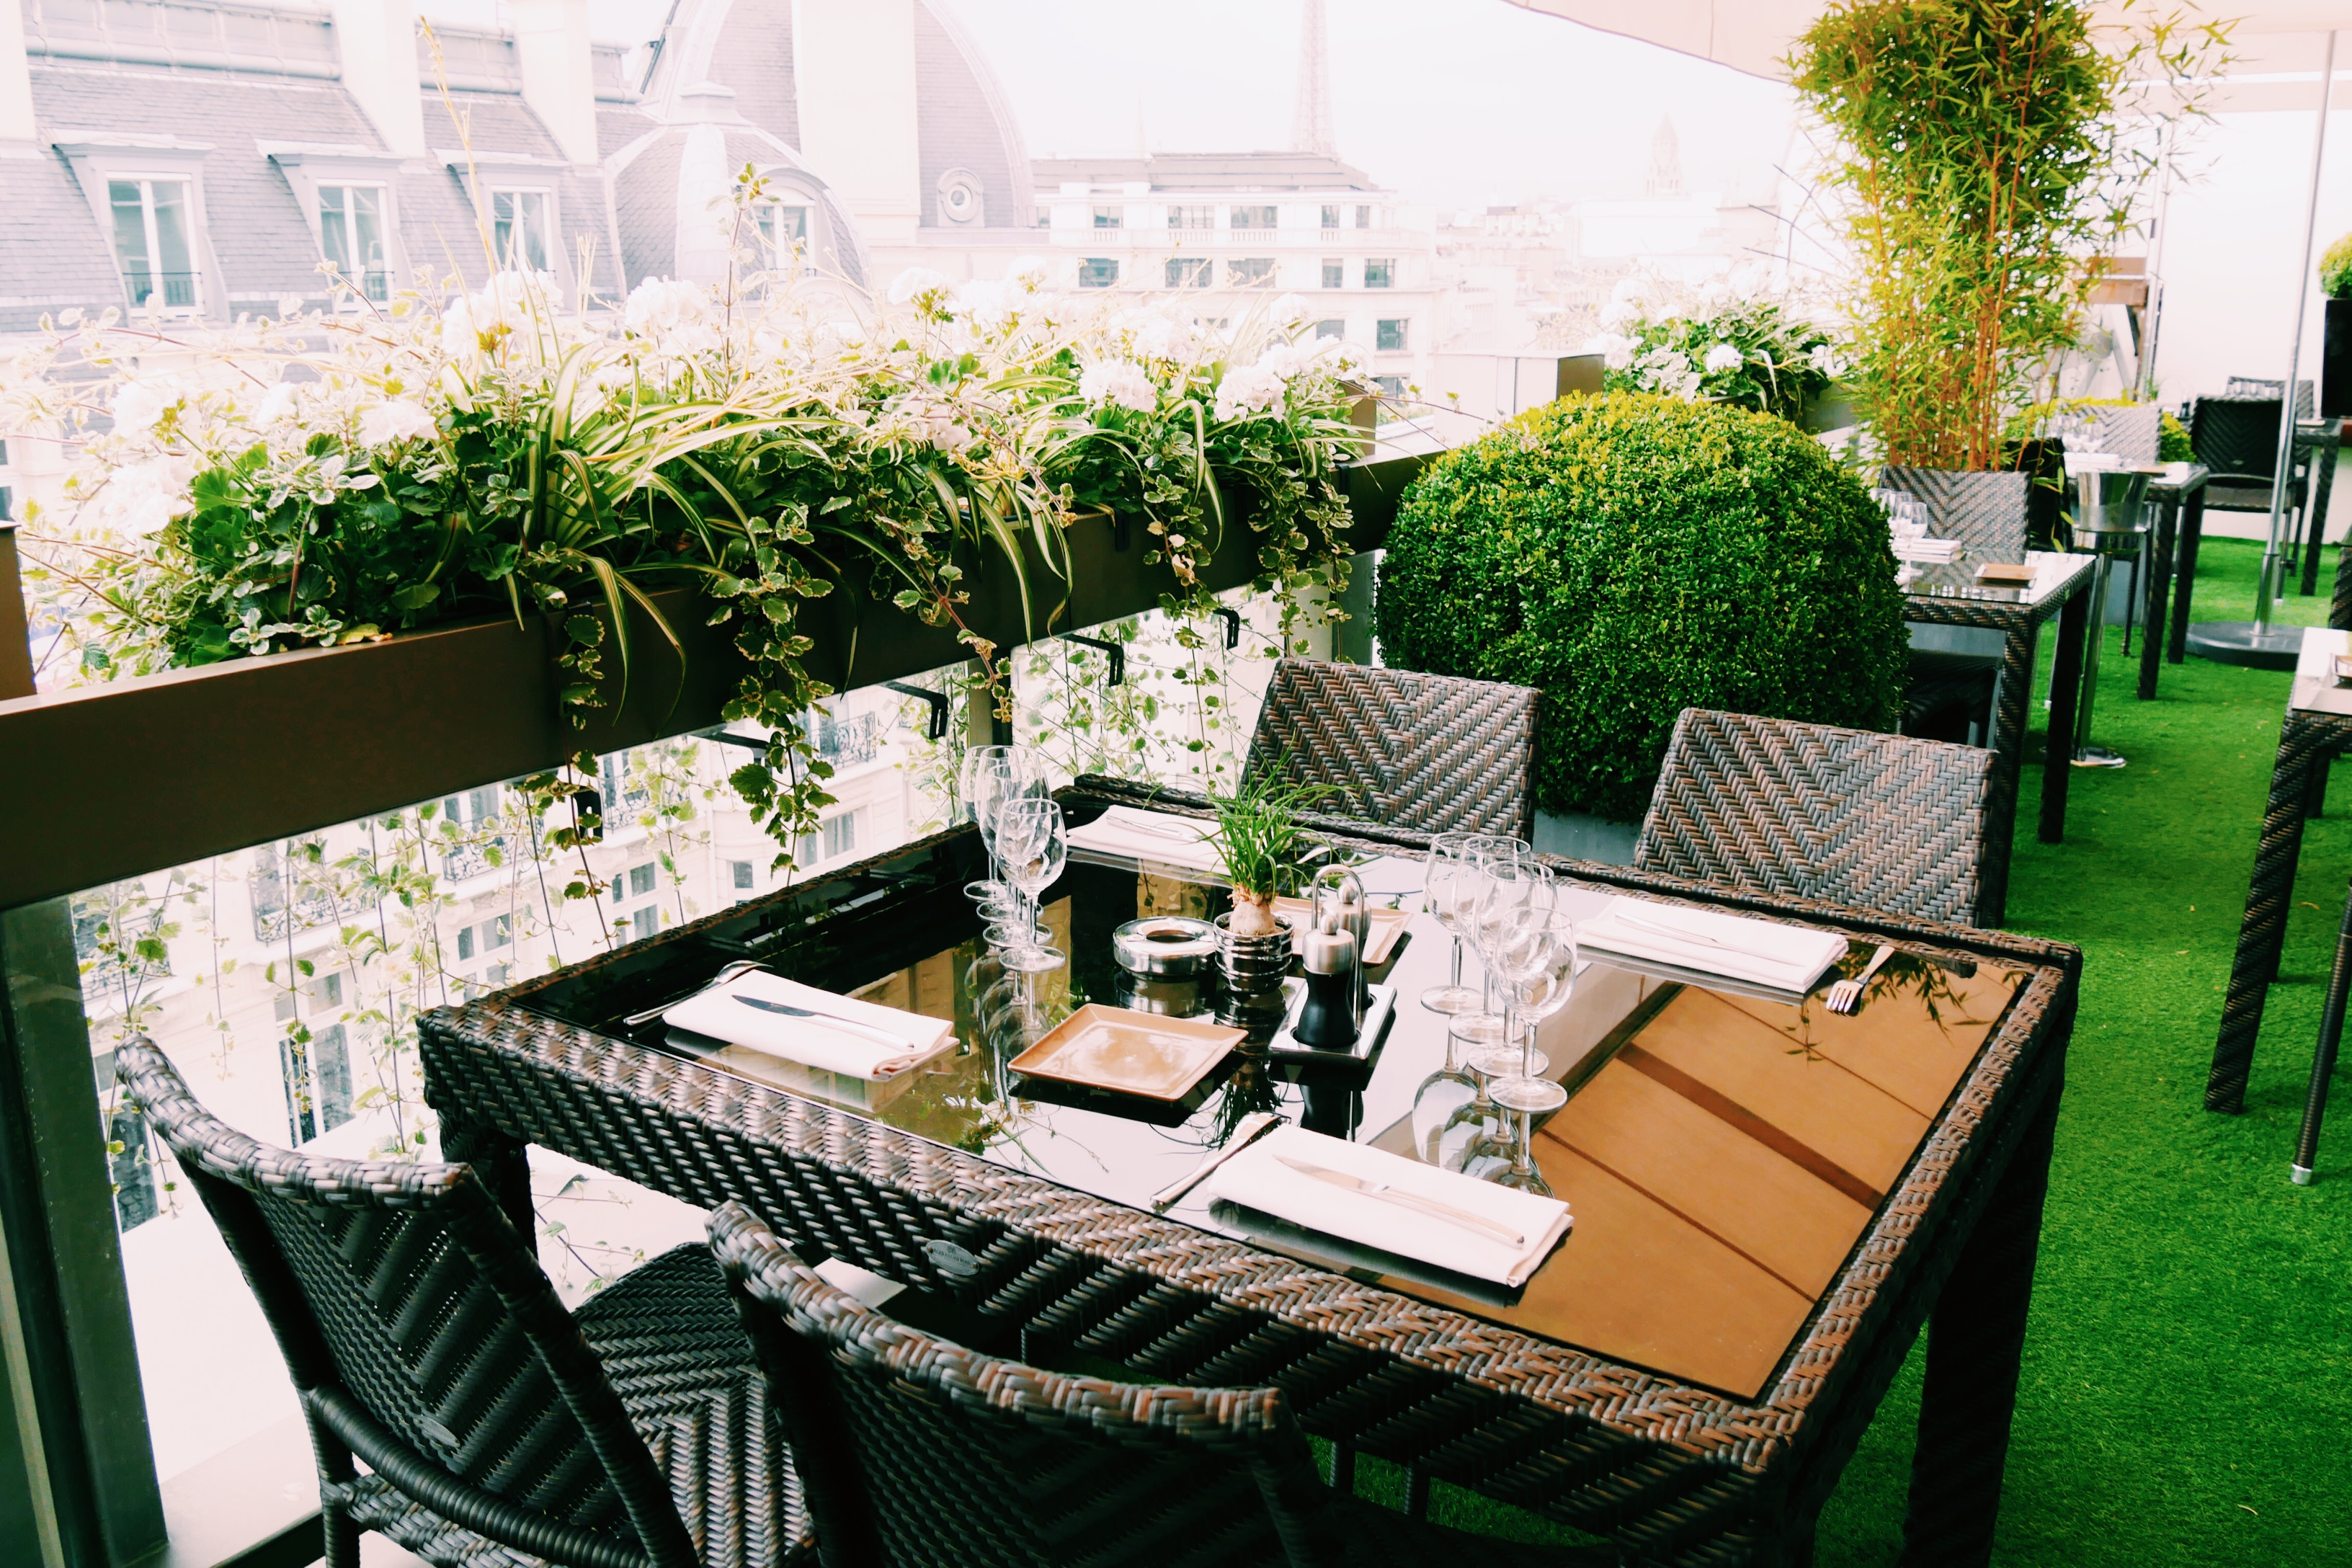 Restaurant-Le-W-rooftop-bar-déjeuner-diner-brunch-Hôtel-Warwick-Paris-Champs-Elysées-terrasse-terrace-photo-usofparis-blog